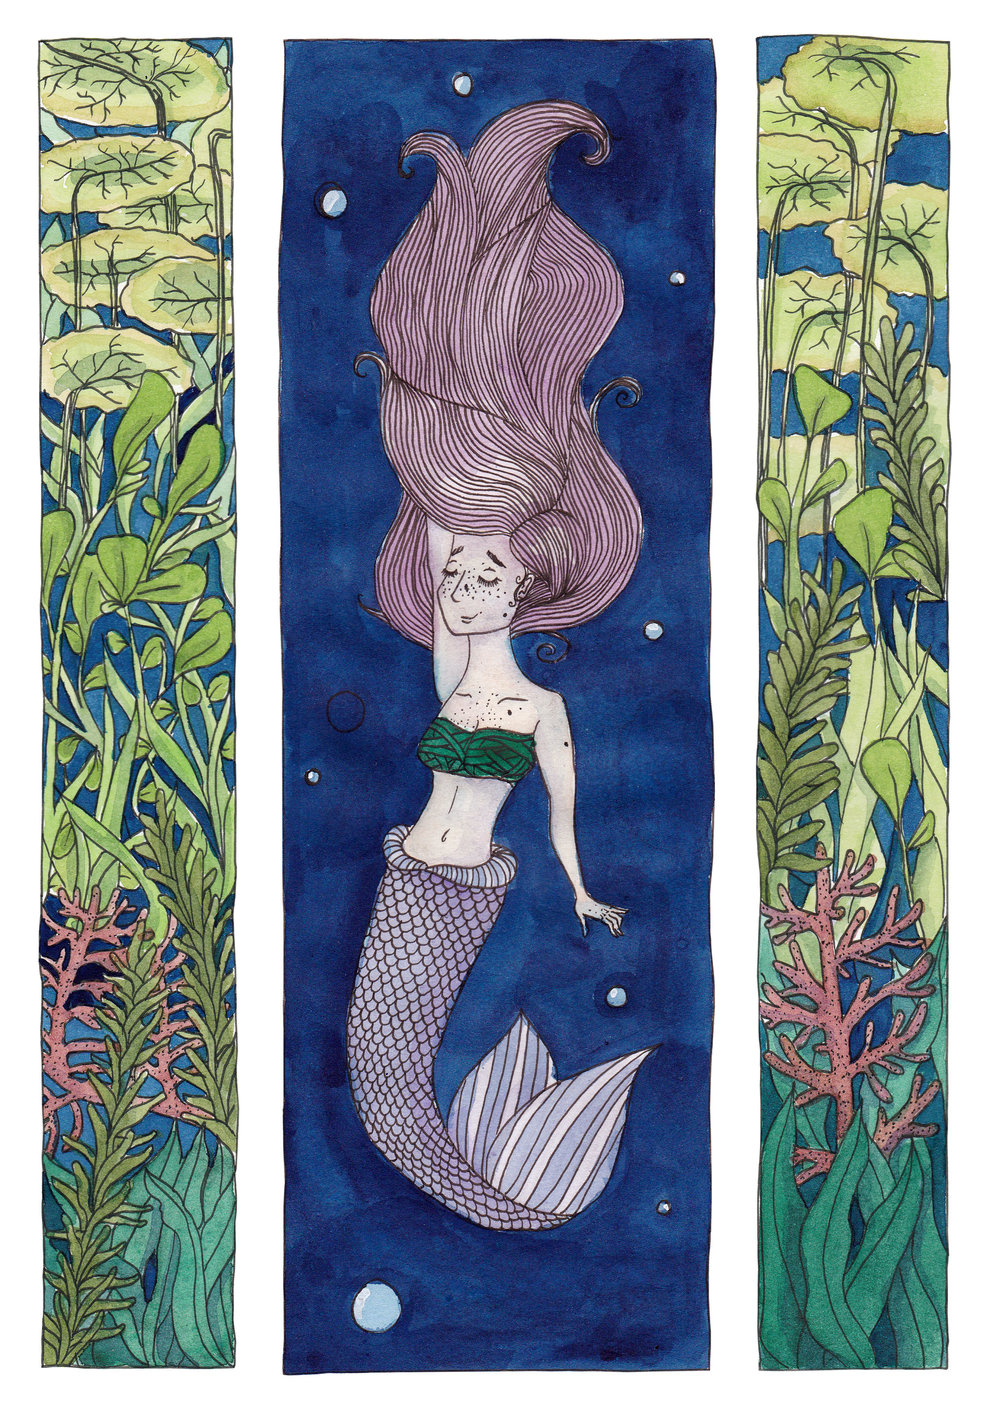 Mermay 2017 in colour using gouache and watercolours